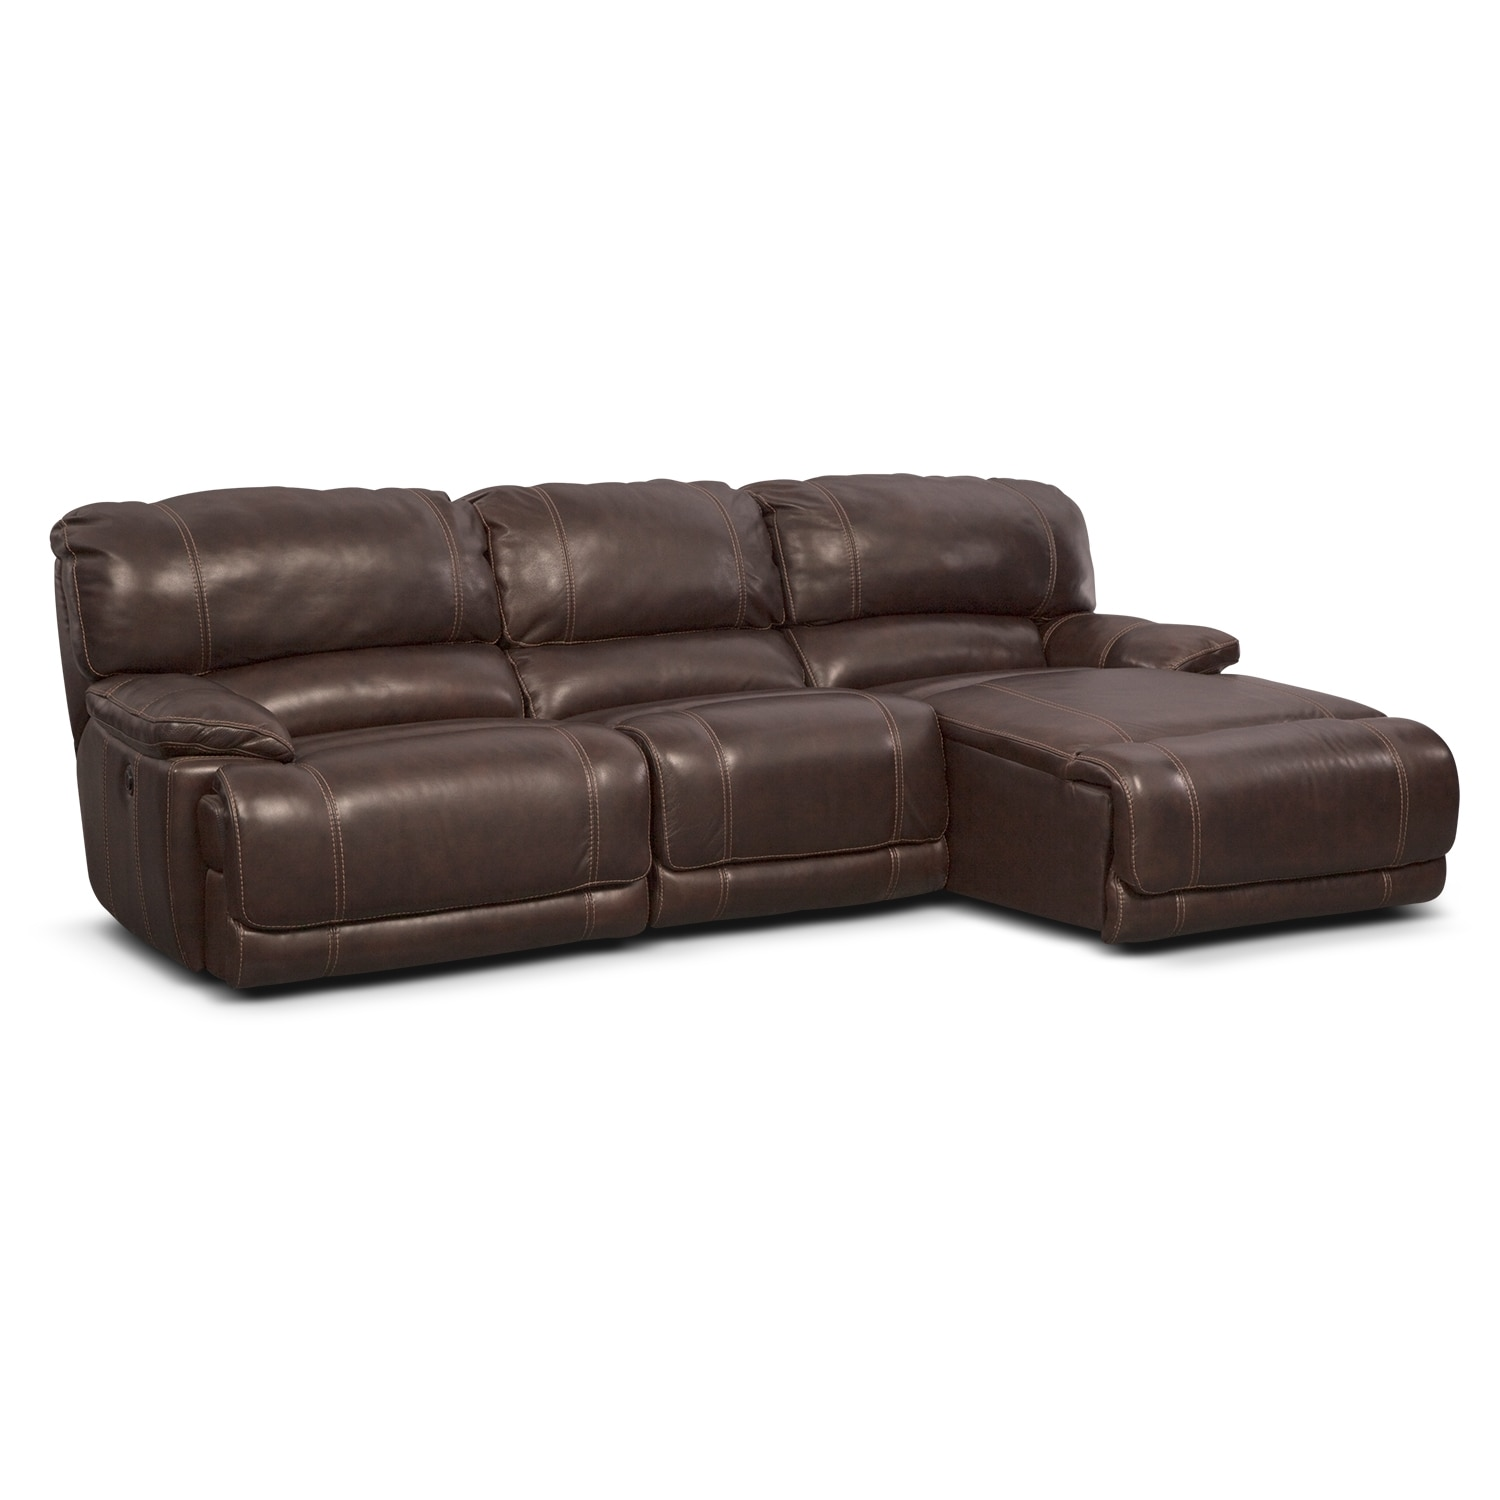 The st malo collection brown american signature furniture for Brighton taupe 3 piece chaise and sofa set